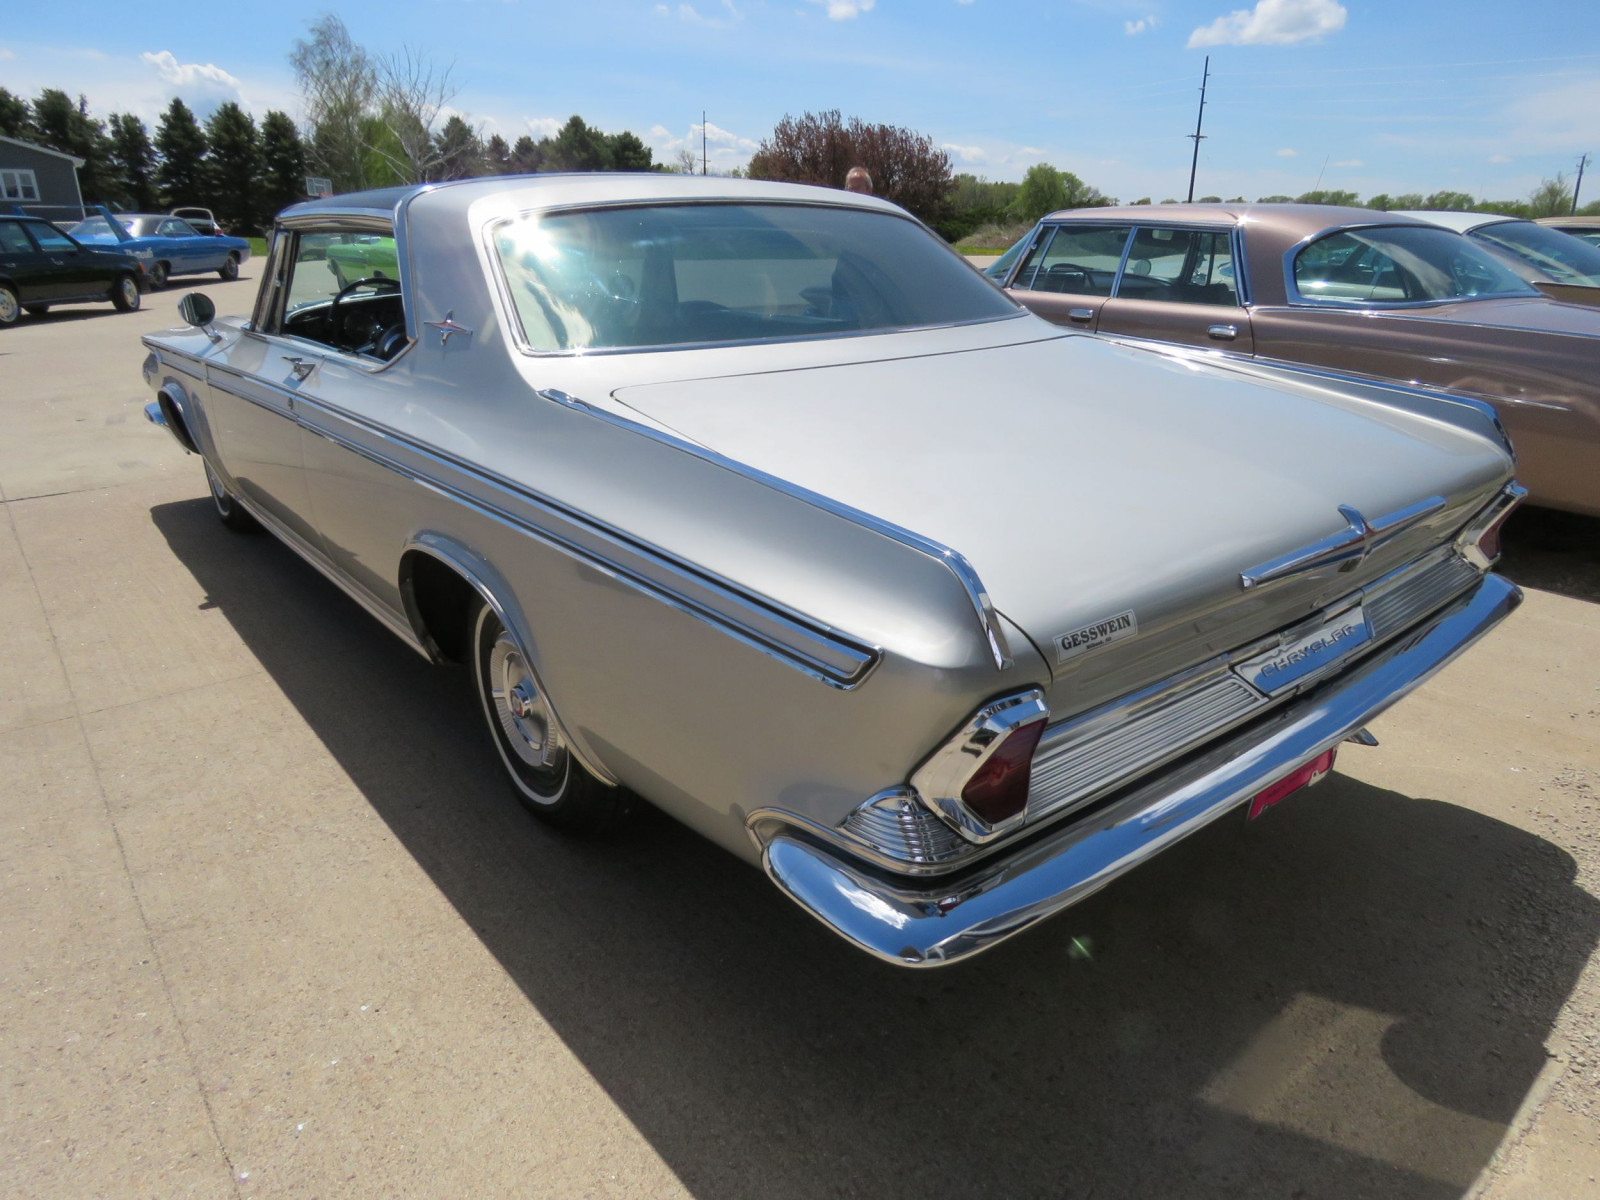 1964 Chrysler 300 Silver Edition 2dr HT - Image 8